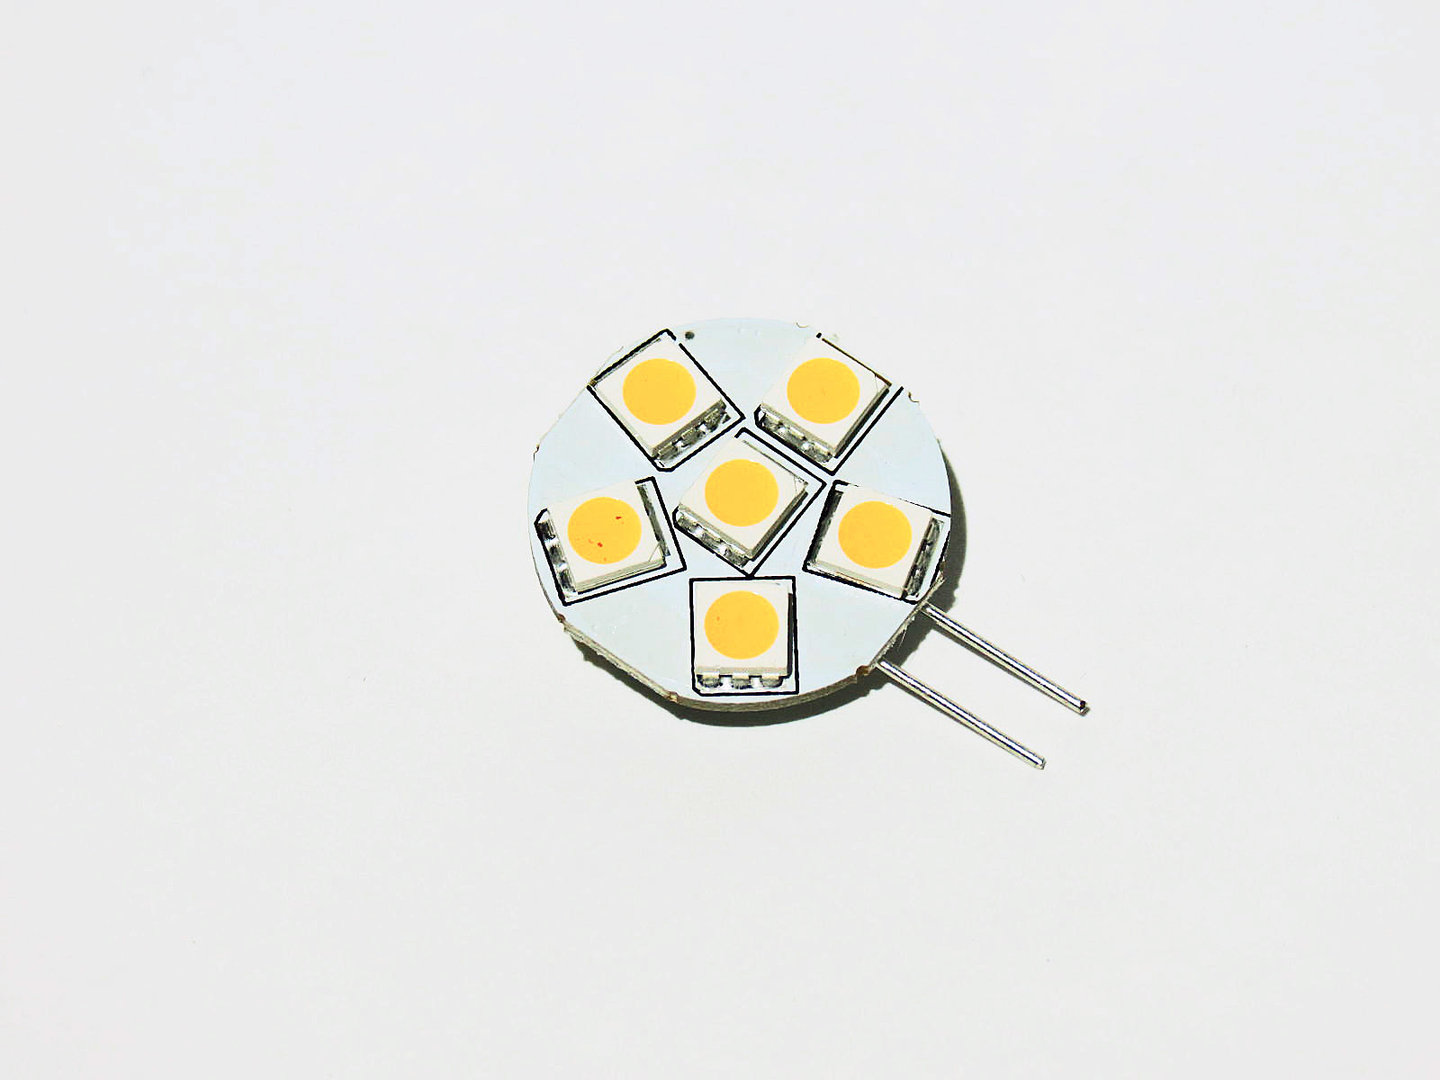 G4 H 6 LED SMD 10-30V warmweiß